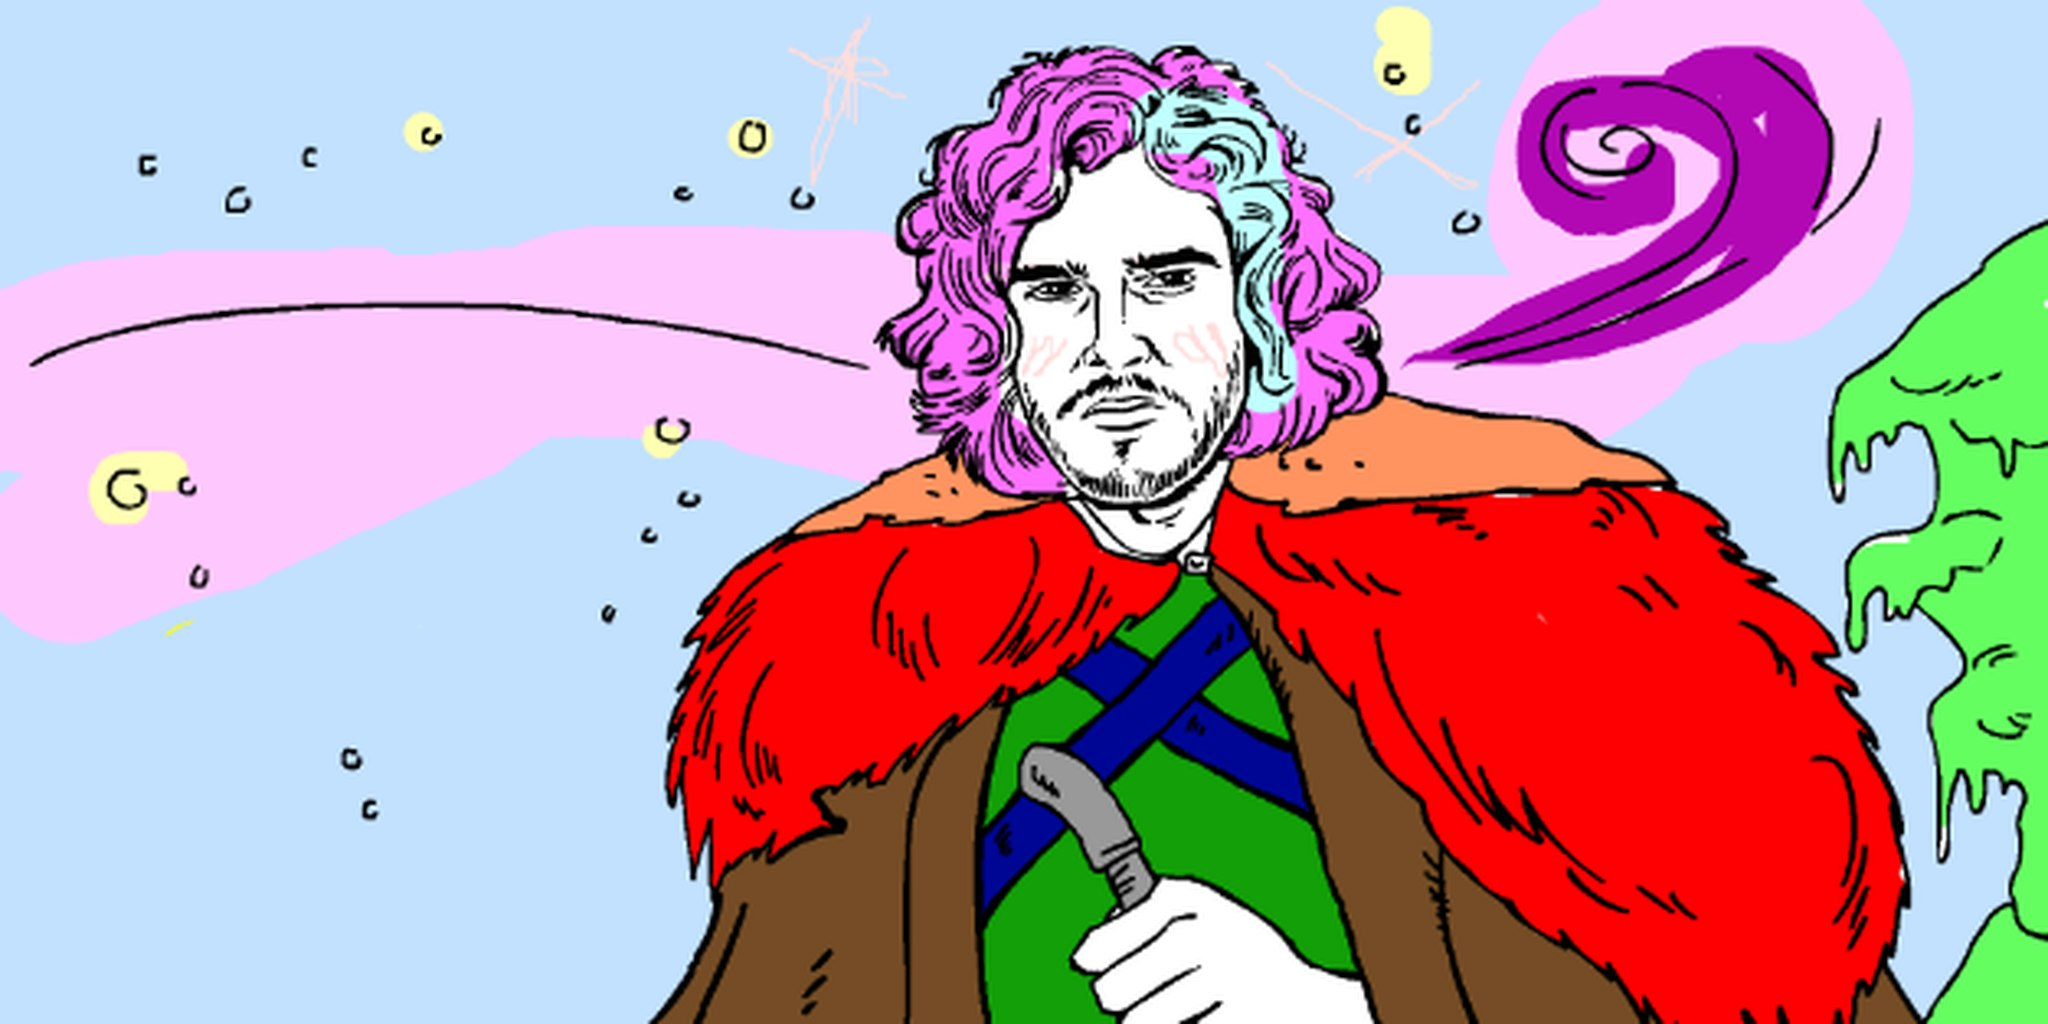 Jon Snow coloring #17, Download drawings